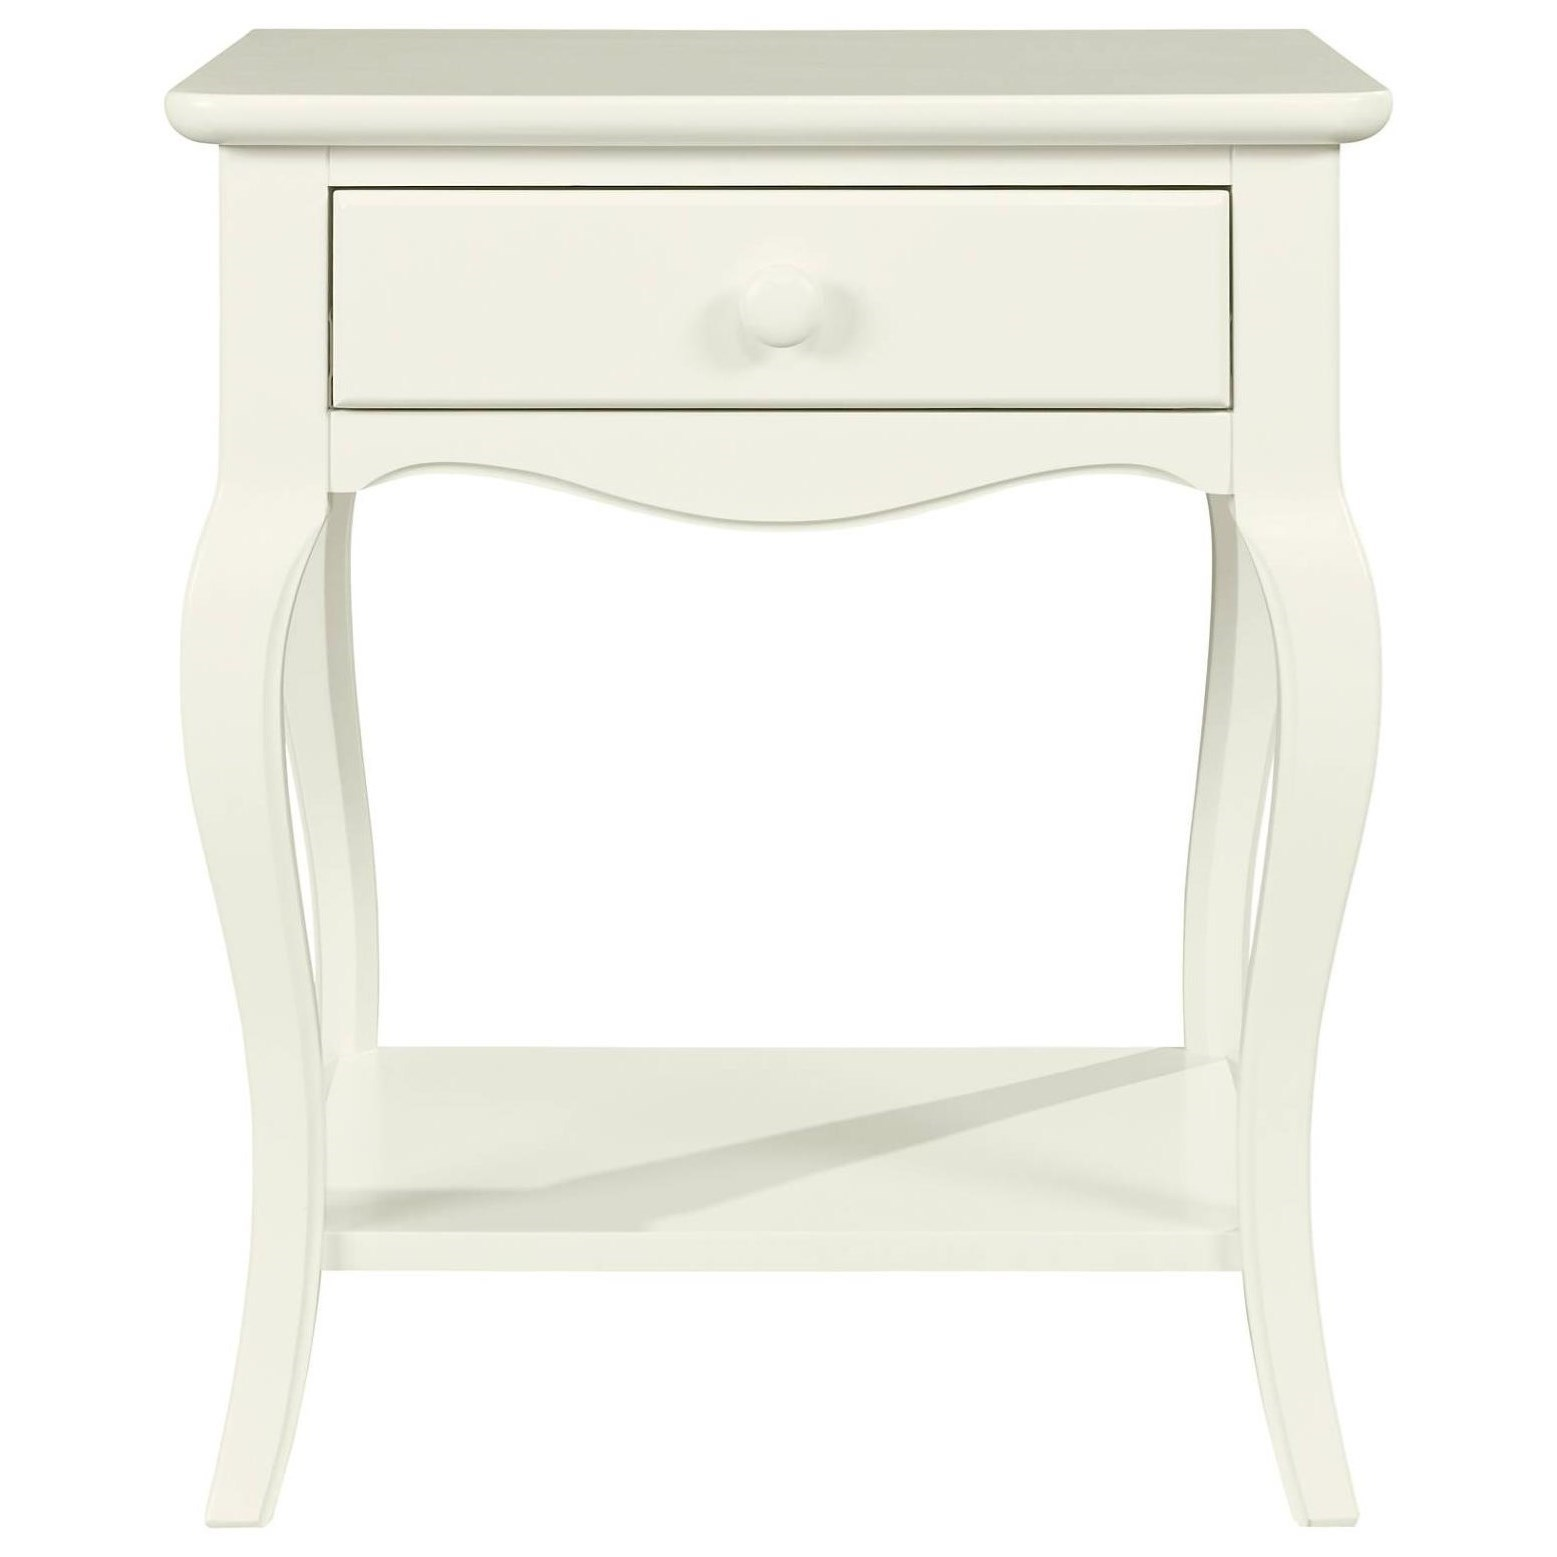 Stone & Leigh Furniture Teaberry Lane Bedside Table - Item Number: 575-23-80